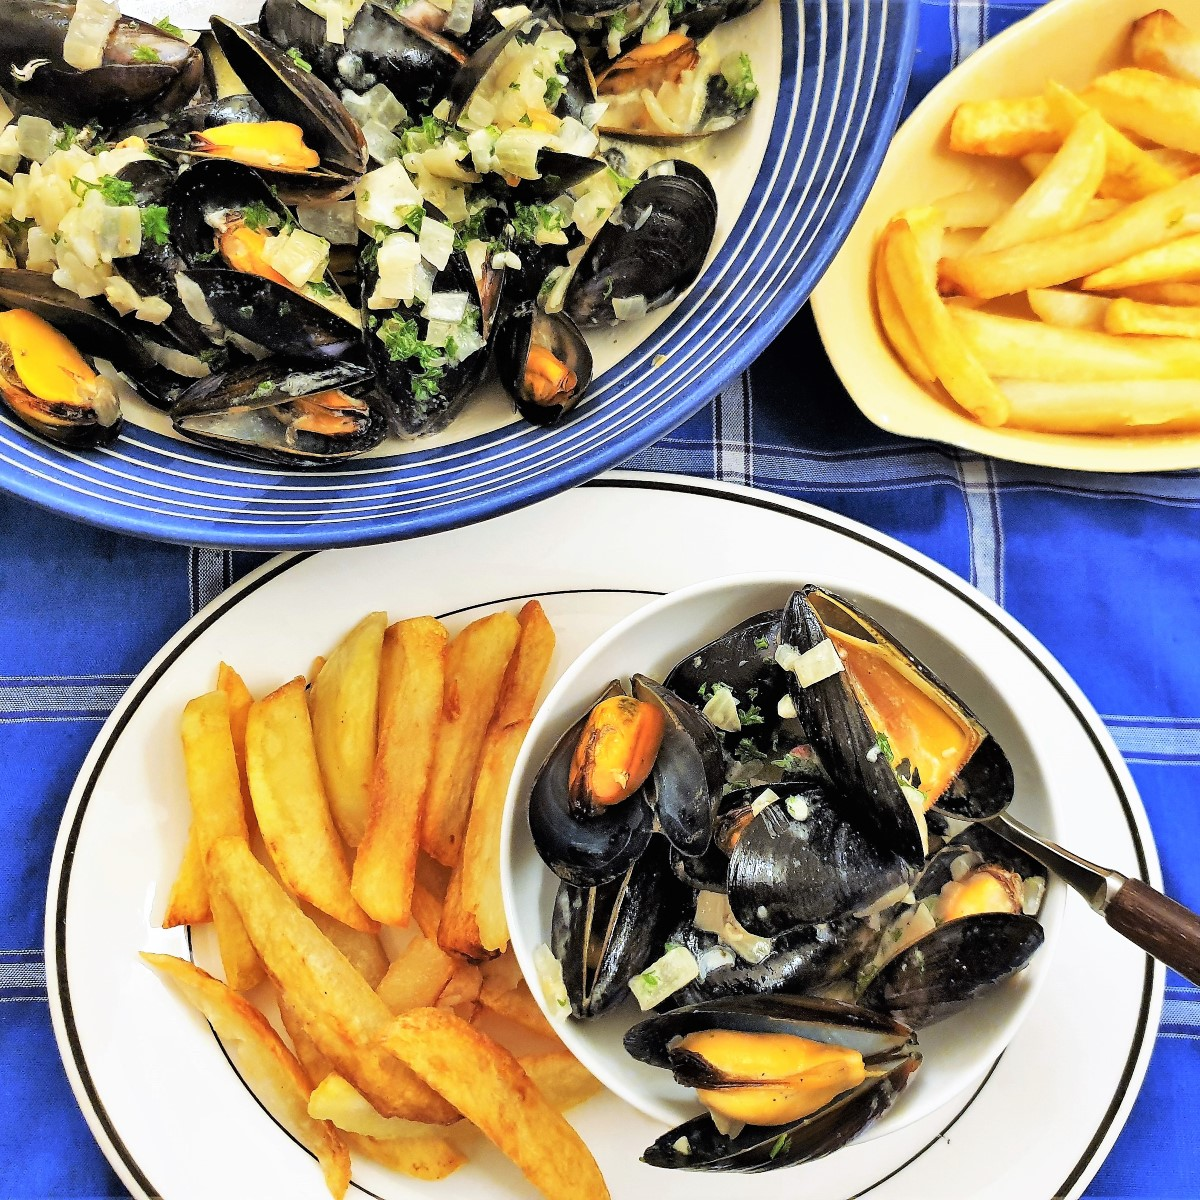 A dish of open mussels on a plate with french fries alongside a serving dish filled with cooked mussels.